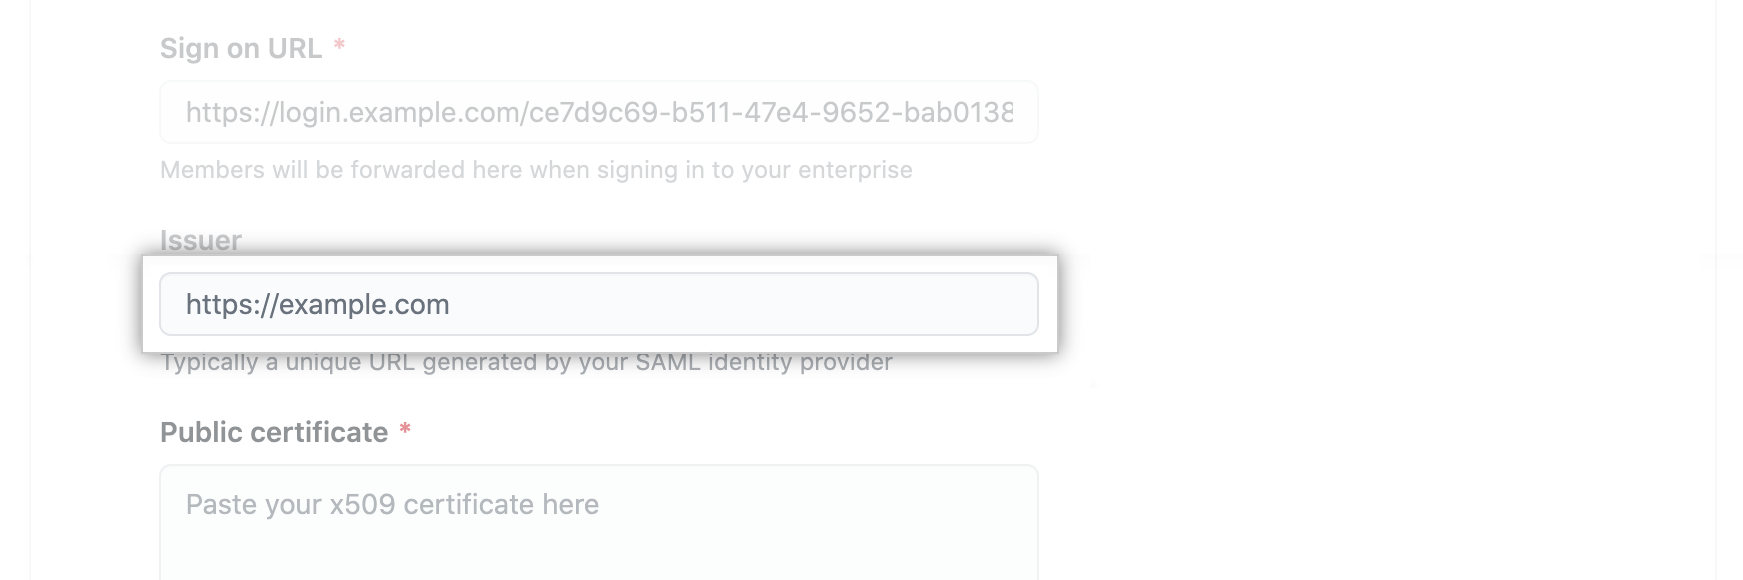 Text field for SAML IdP's issuer URL